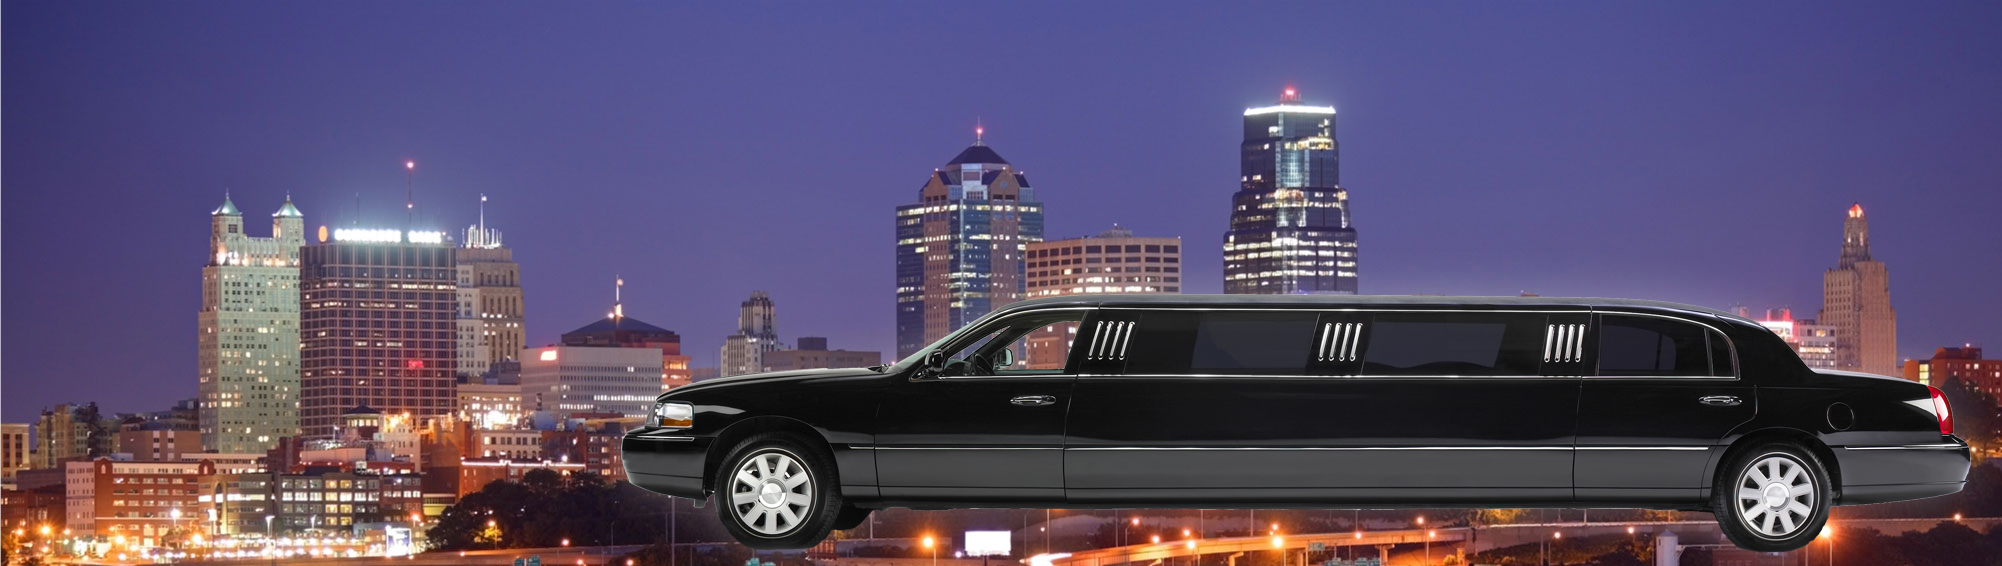 Curbside Limo